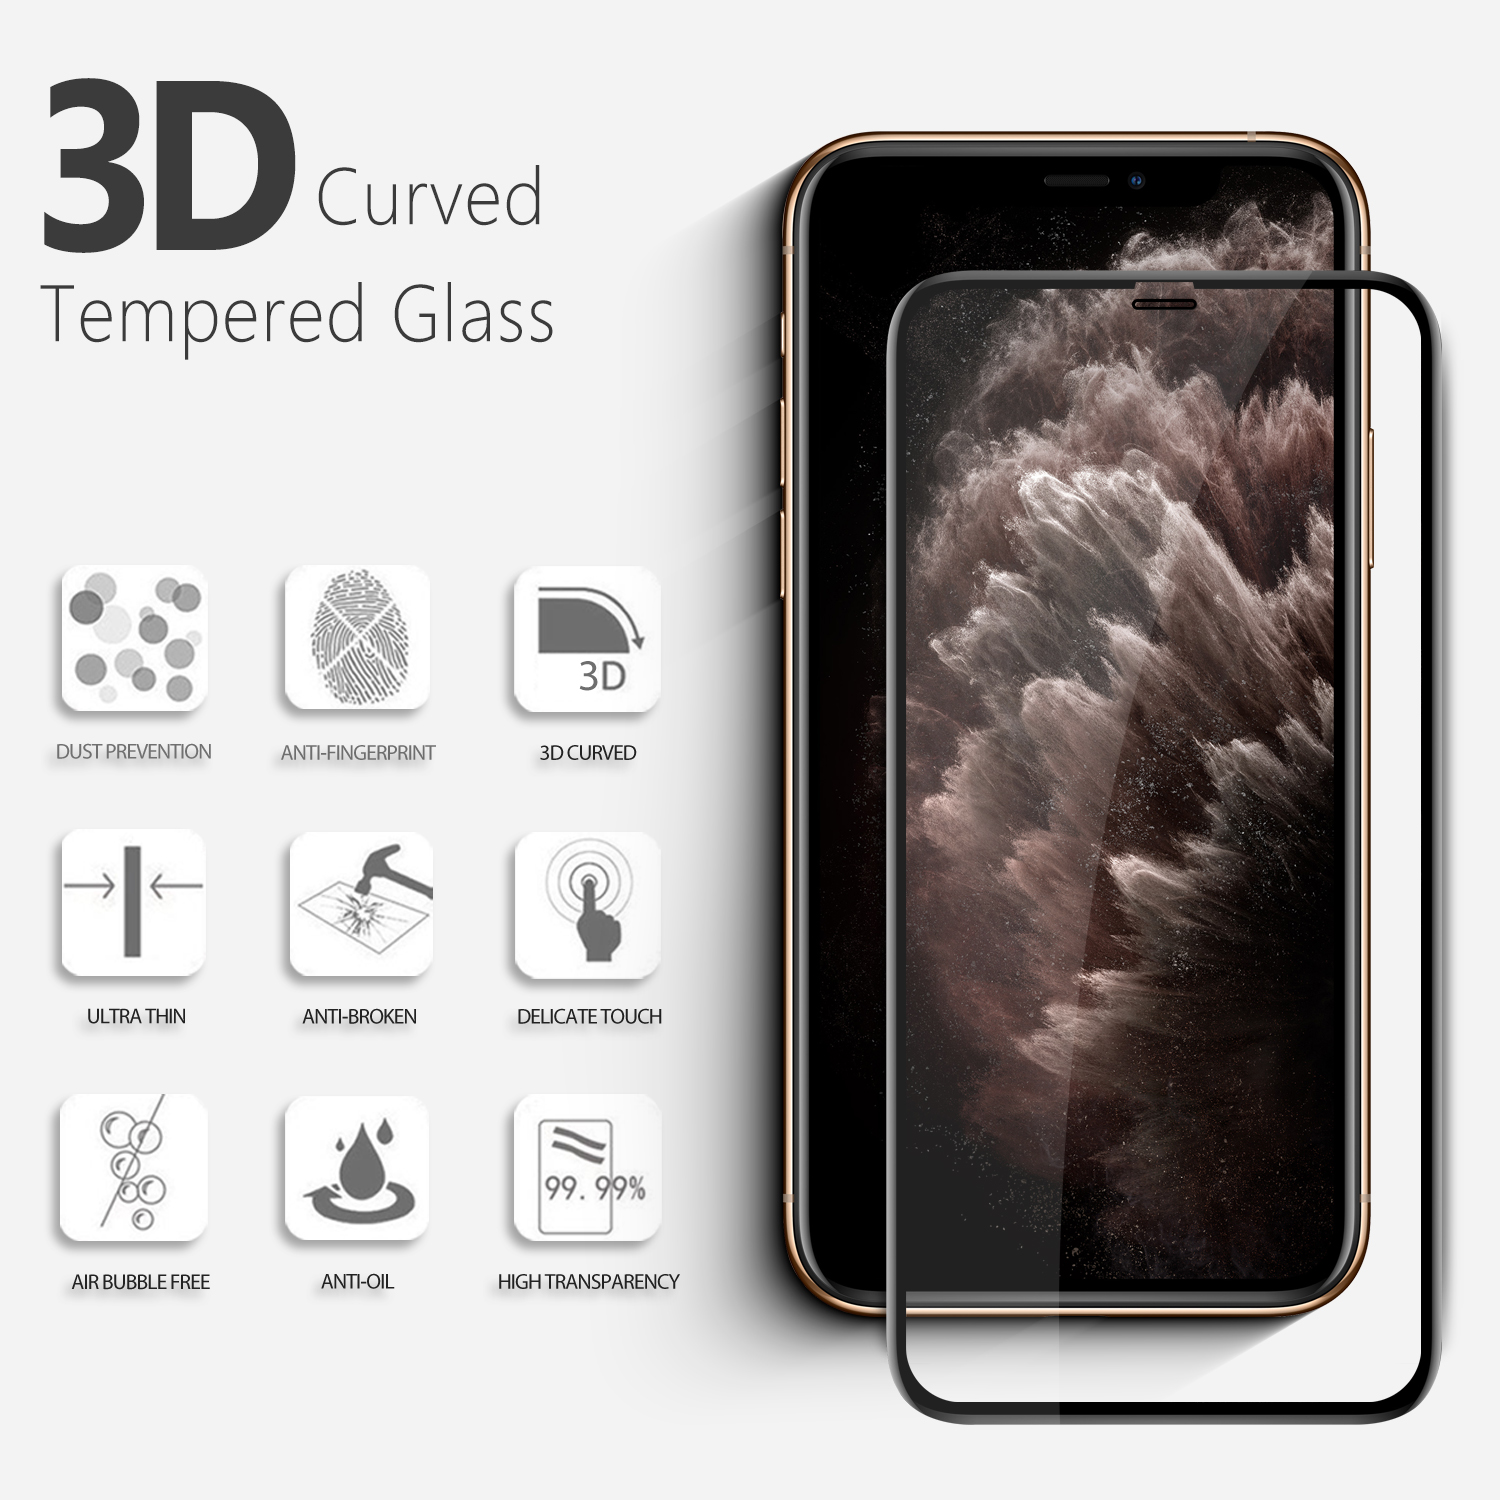 Vmax Tempered Glass screen protectors for iPhone XS